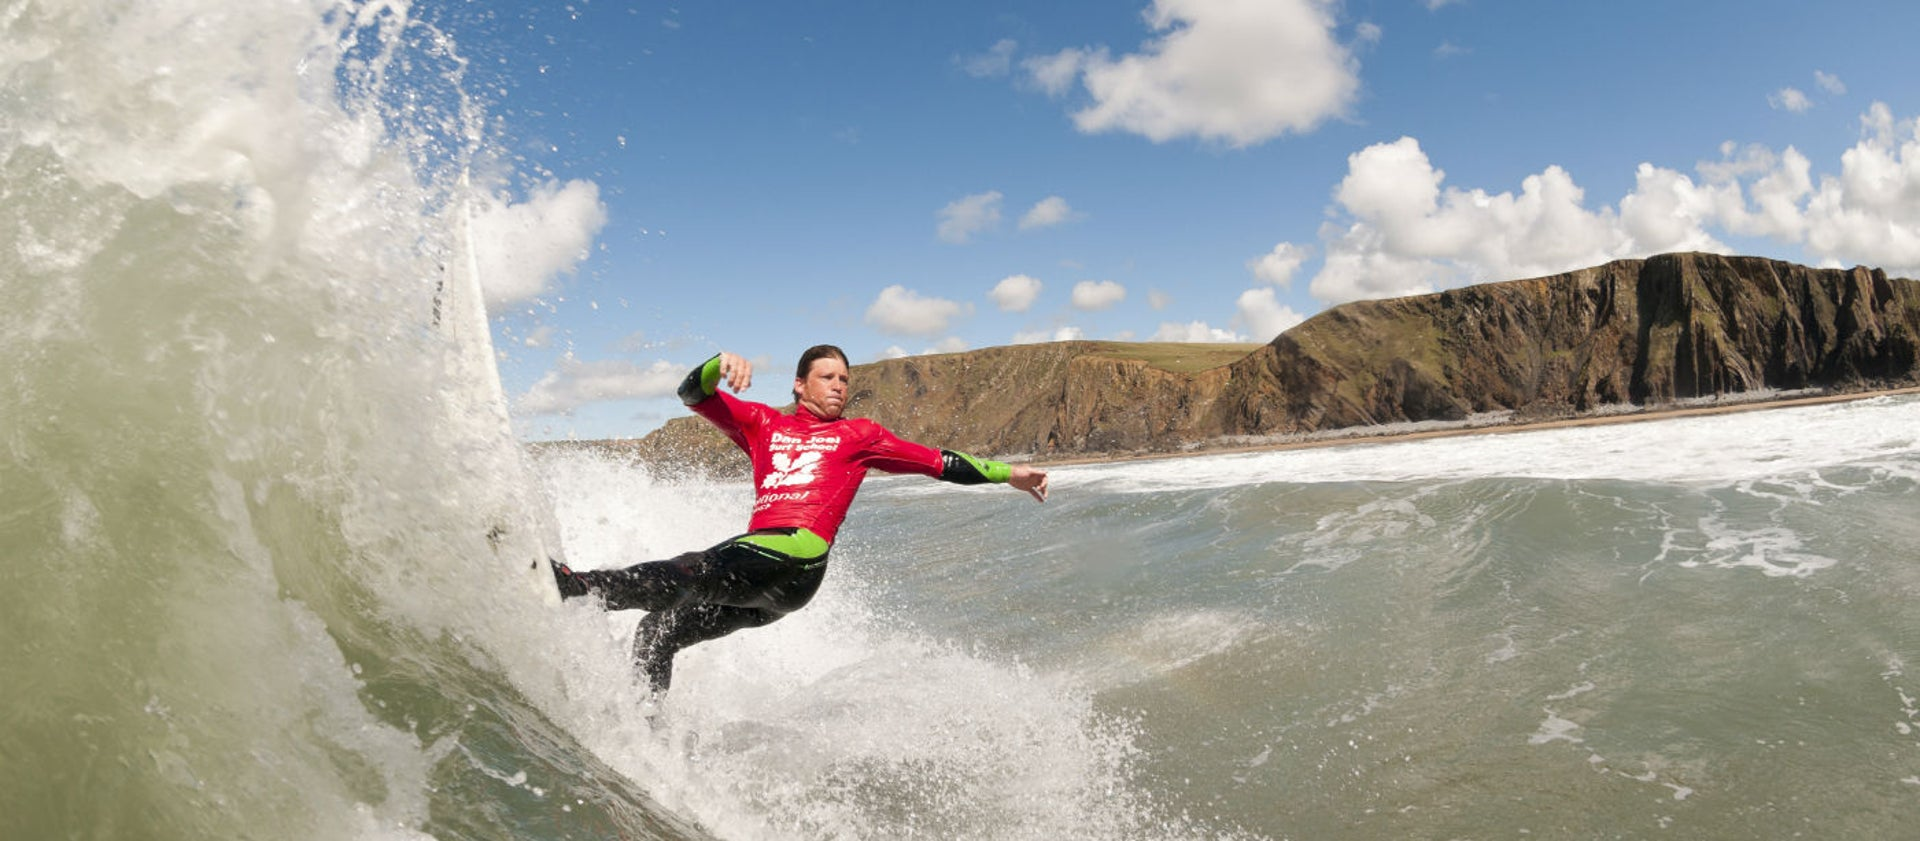 Watersports at Lizard Point and Kynance Cove | National TrustVisit our Facebook pageVisit our